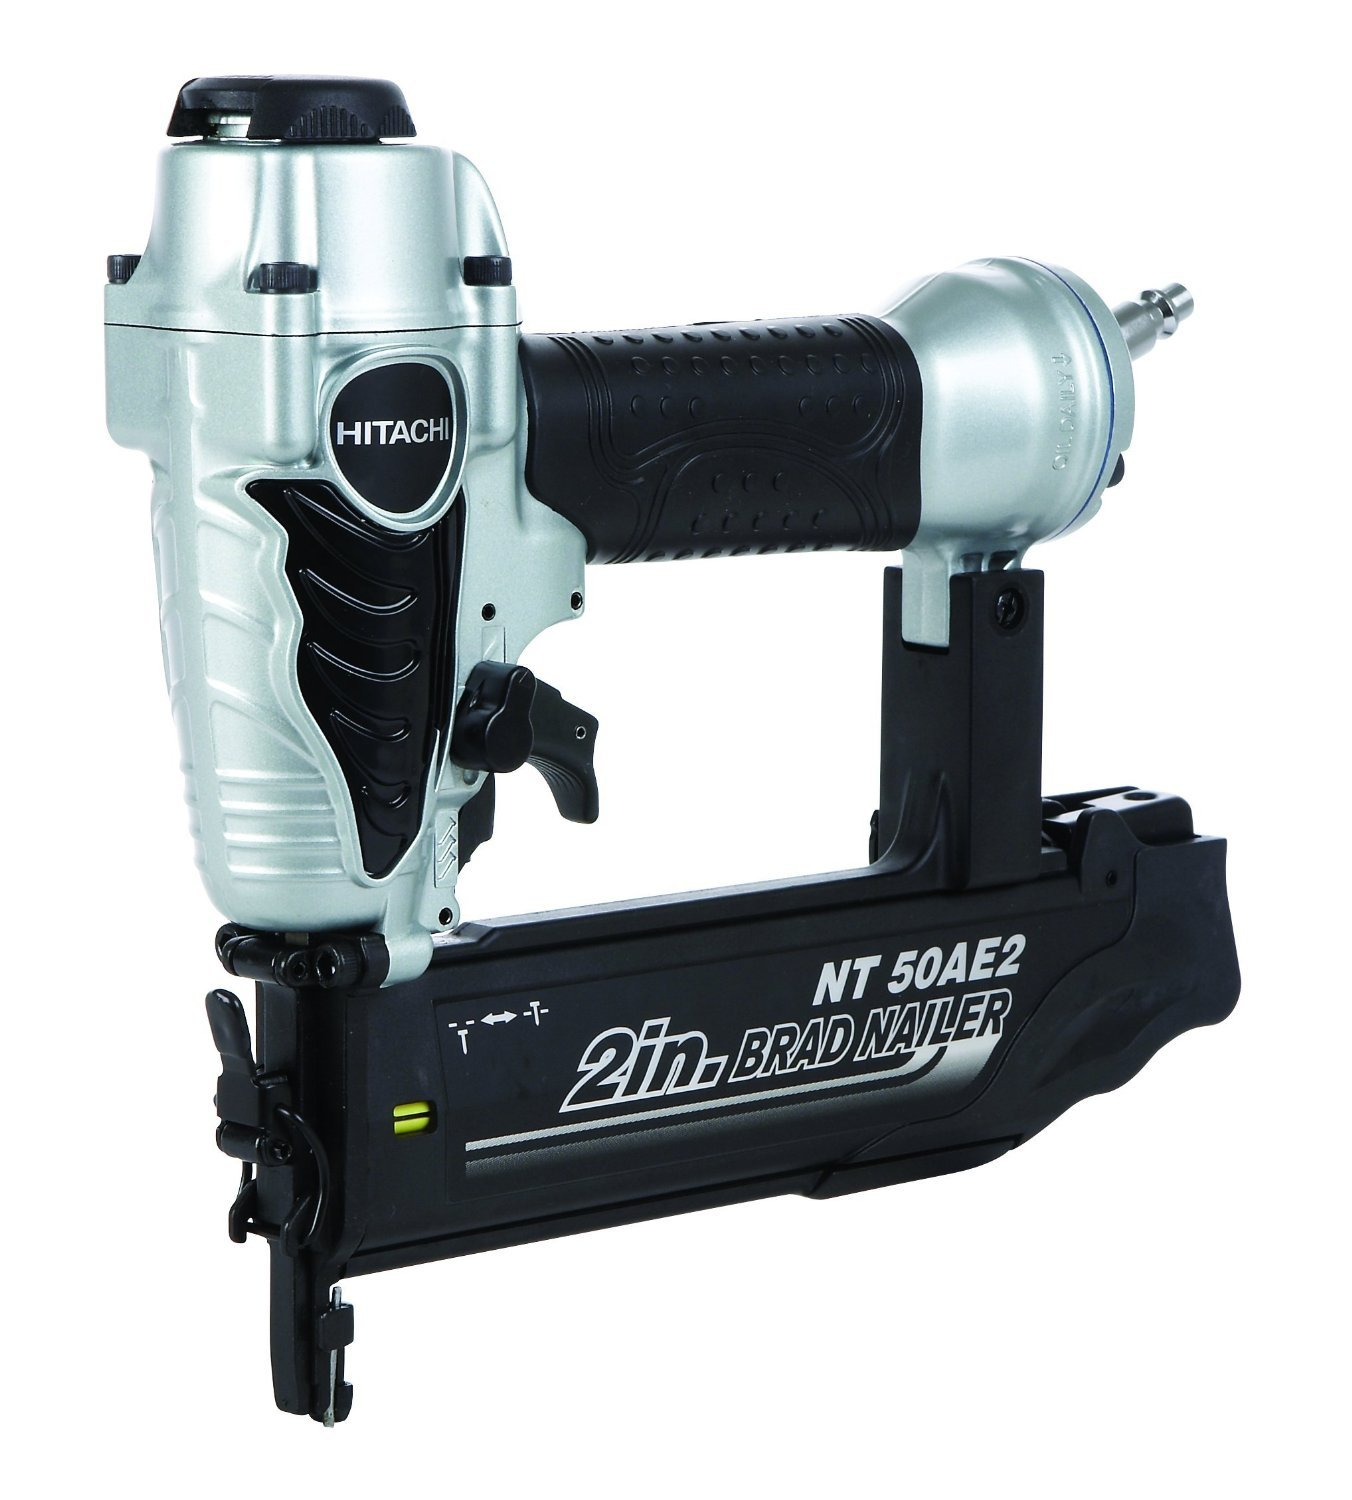 Factory-Reconditioned: Hitachi NT50AE2 18-Gauge 3/4-Inch to 2-Inch Brad Nailer